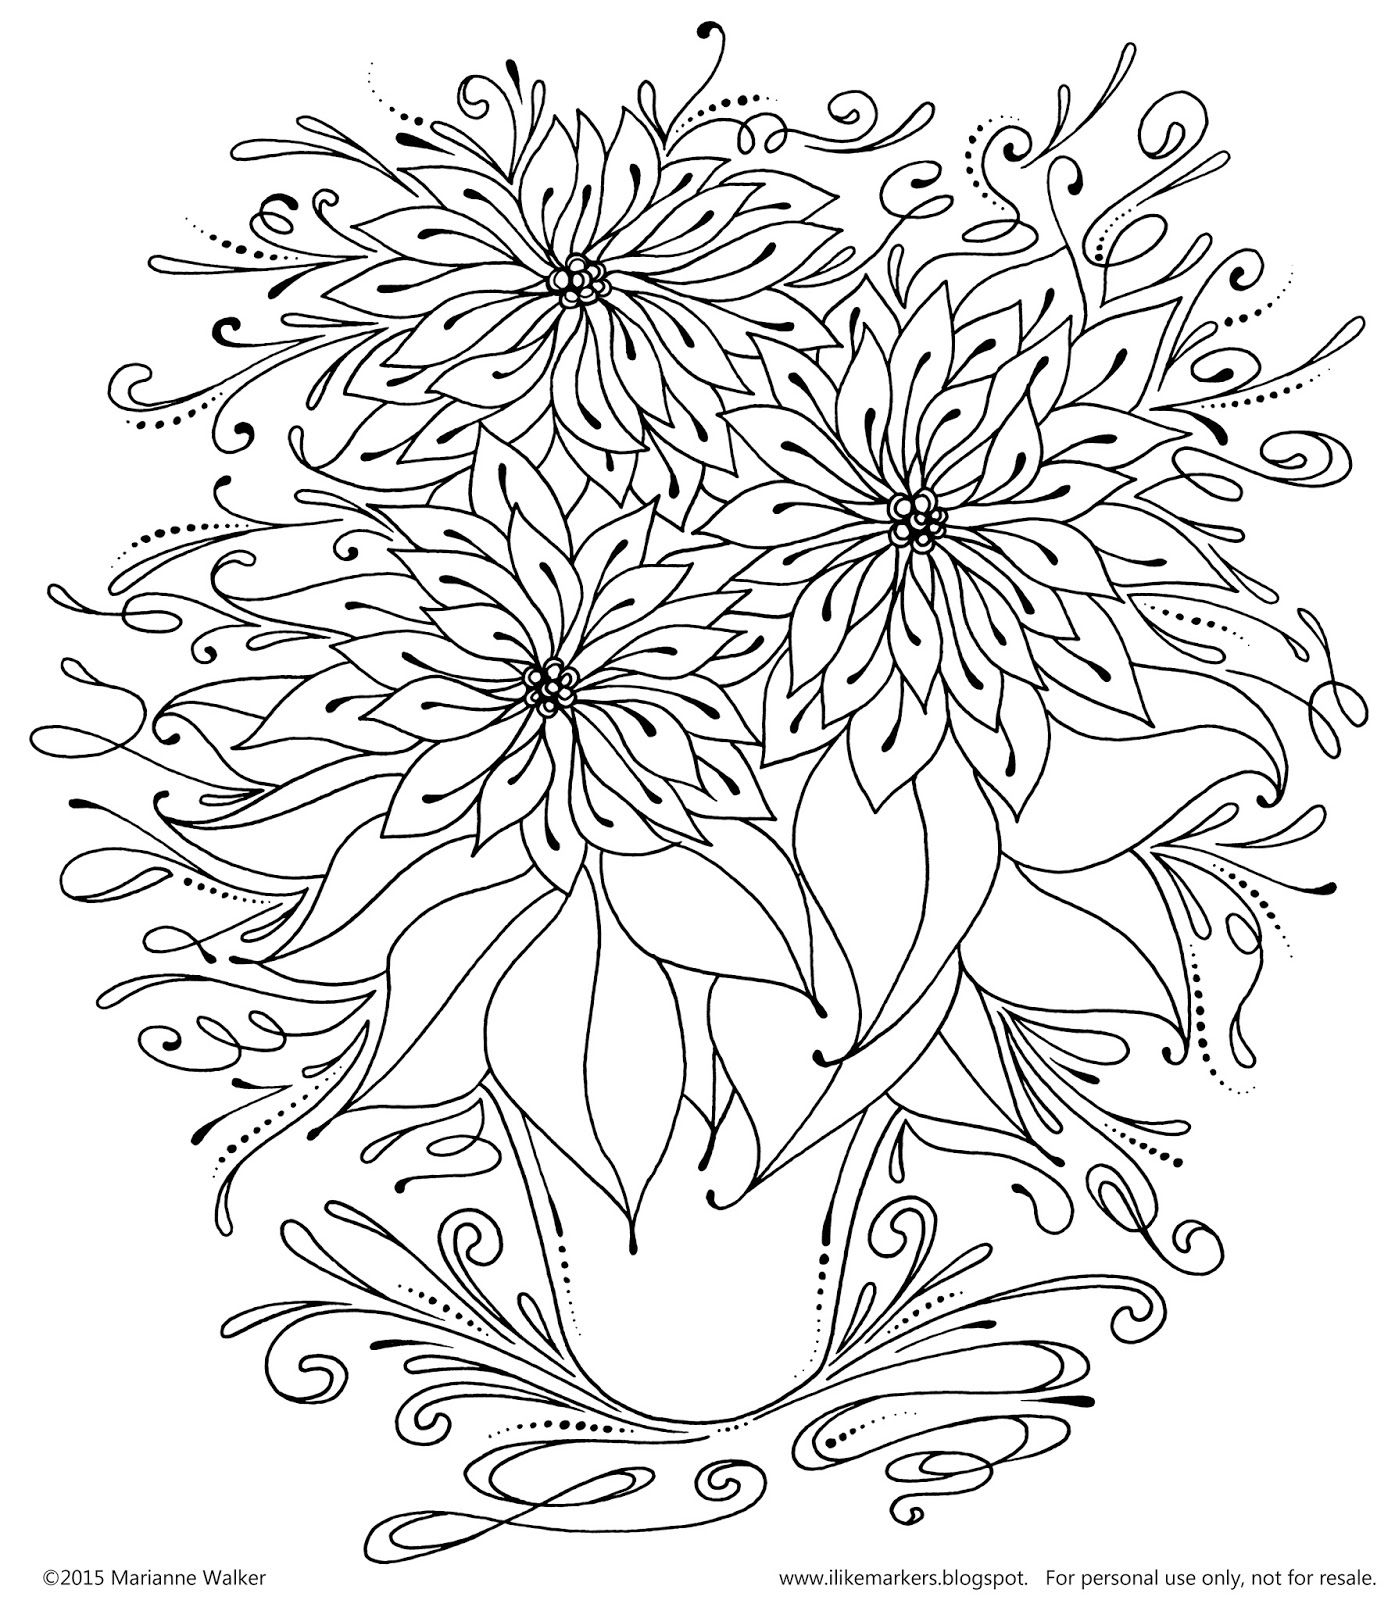 I Like Markers: Free Poinsettia Line Art download | clip art ...